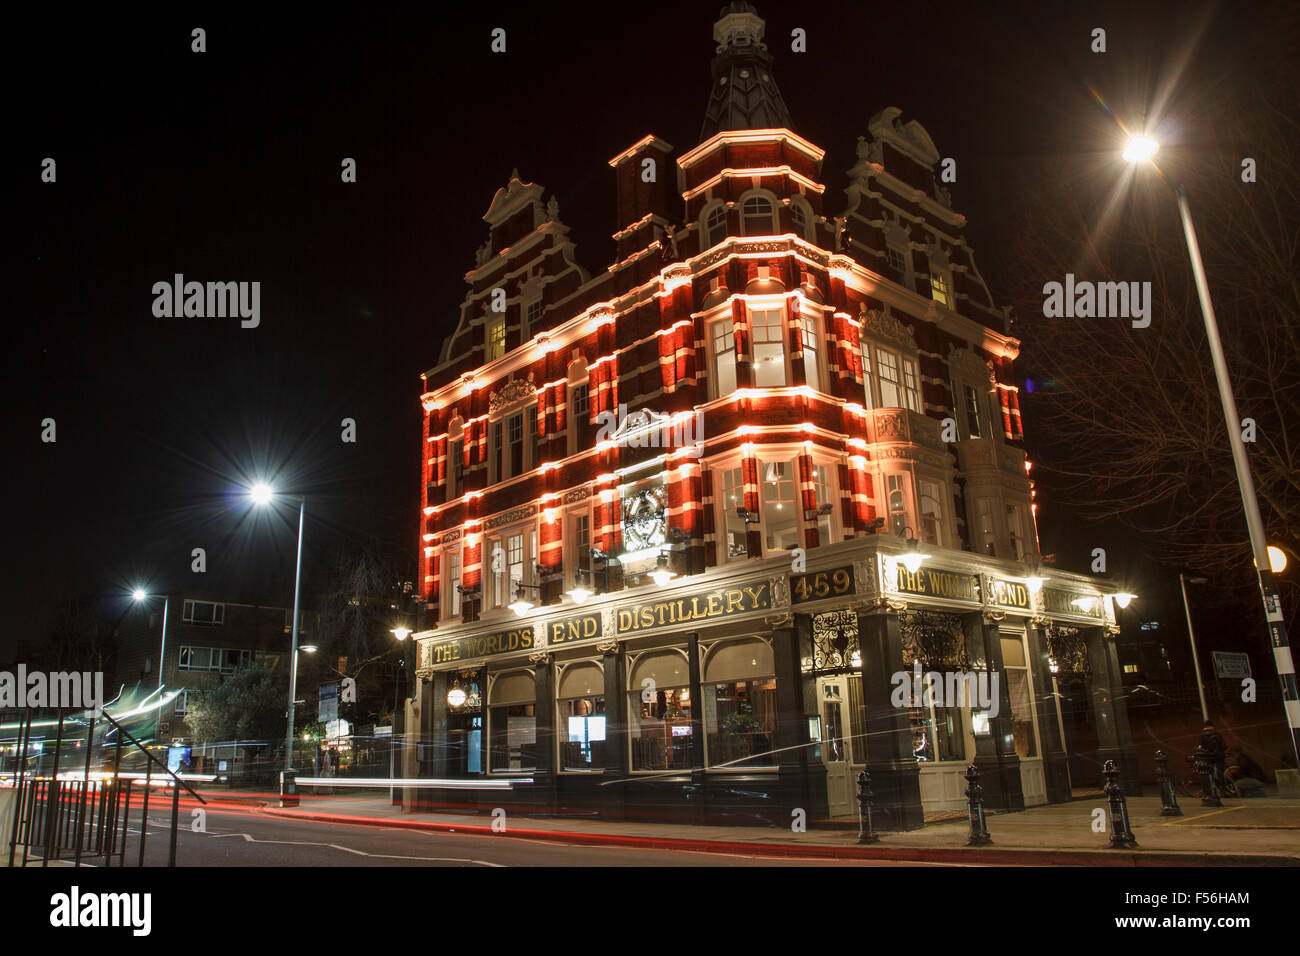 The World's End Market - A famous pub at King's Road, Chelsea, London - Stock Image